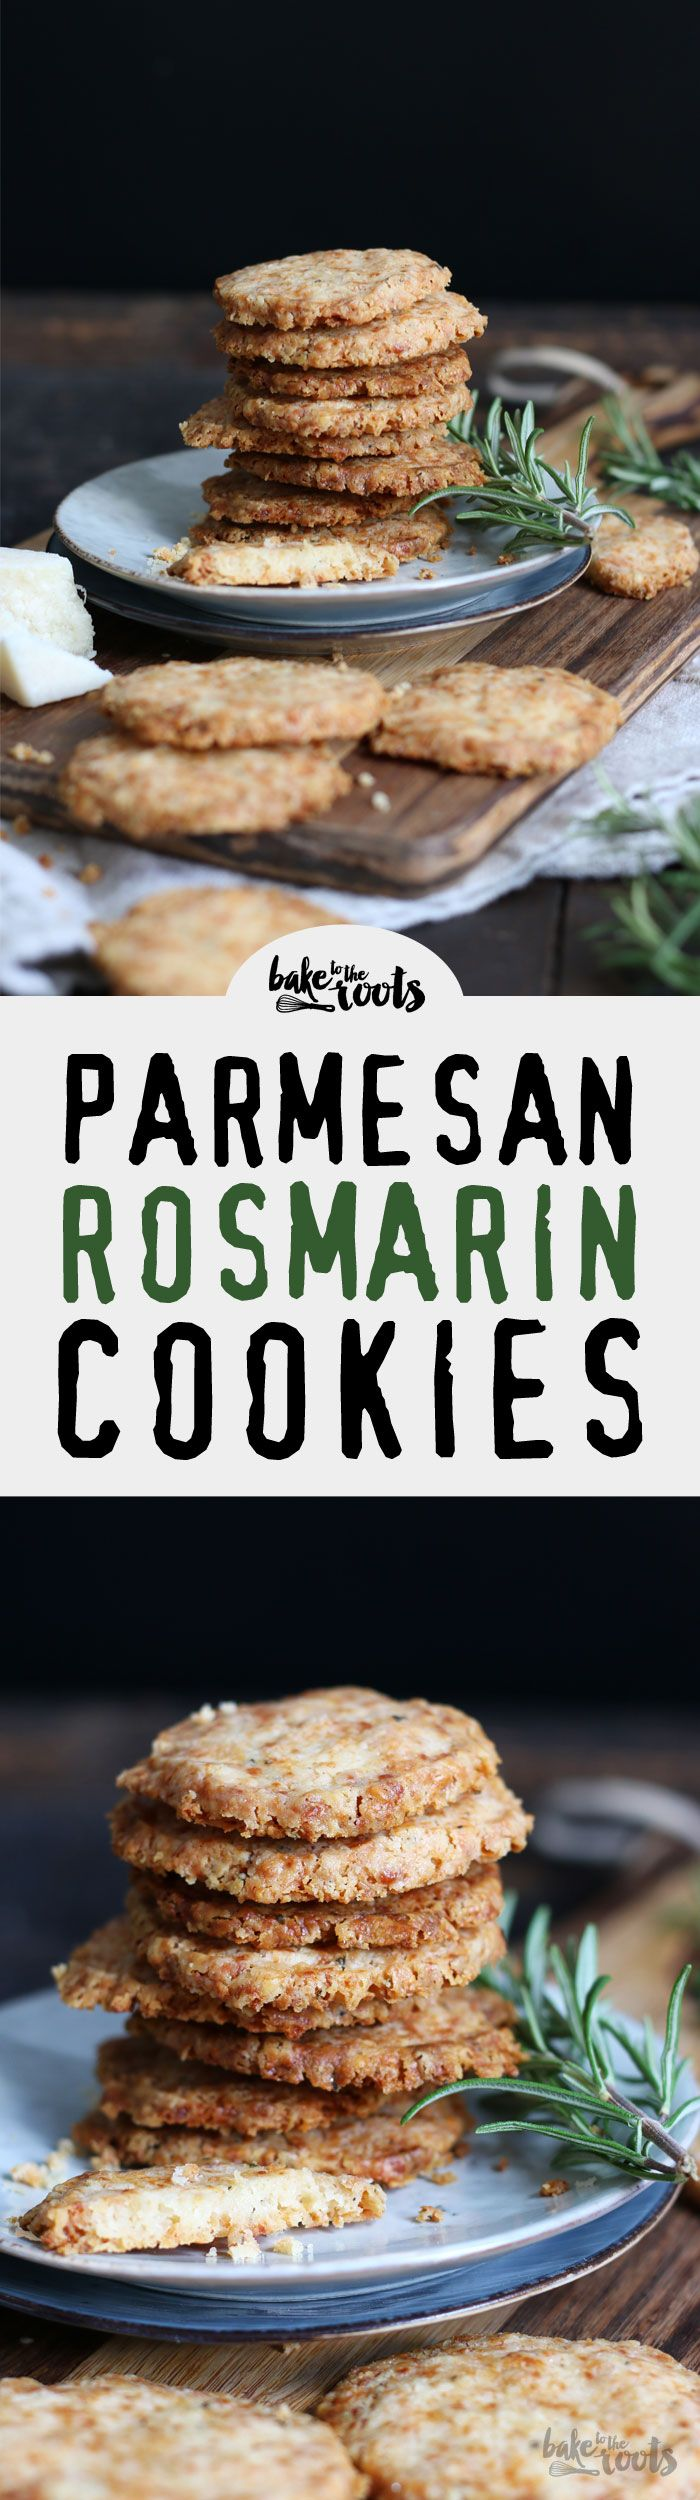 My favorite cookies when it comes to savory cookies - Parmesan Rosemary Cookies   Bake to the roots